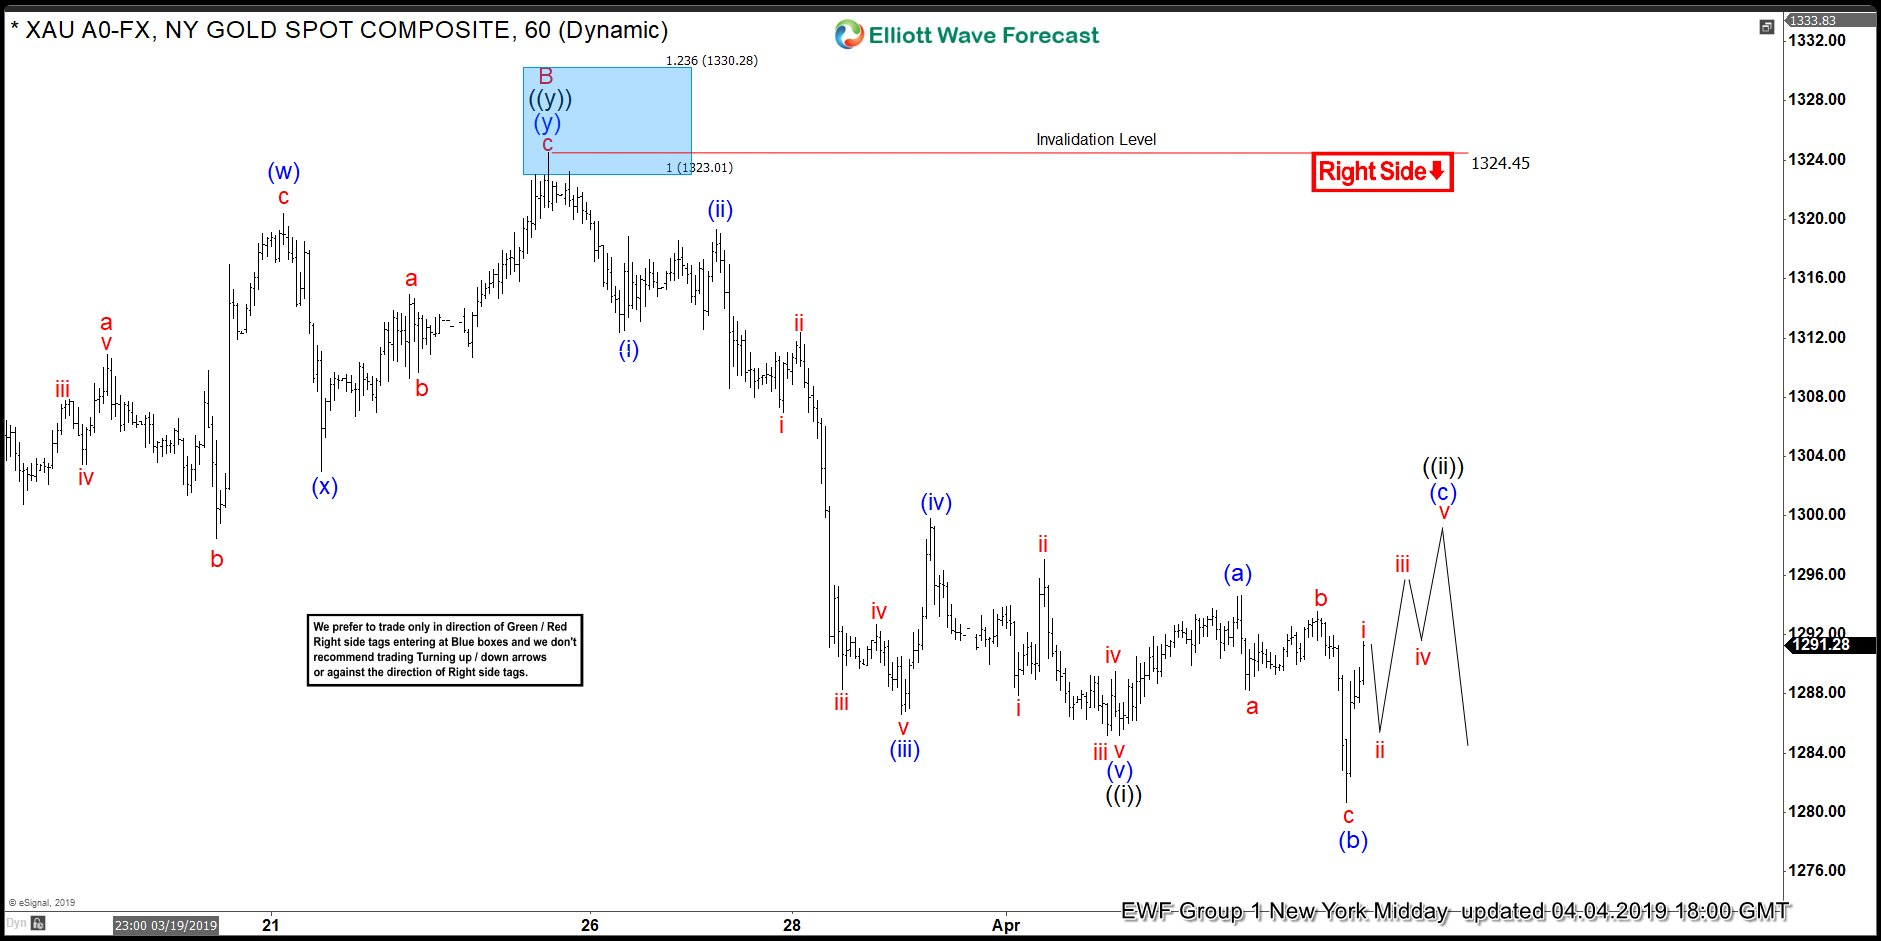 Elliott Wave View Looking for Further Correction in Gold